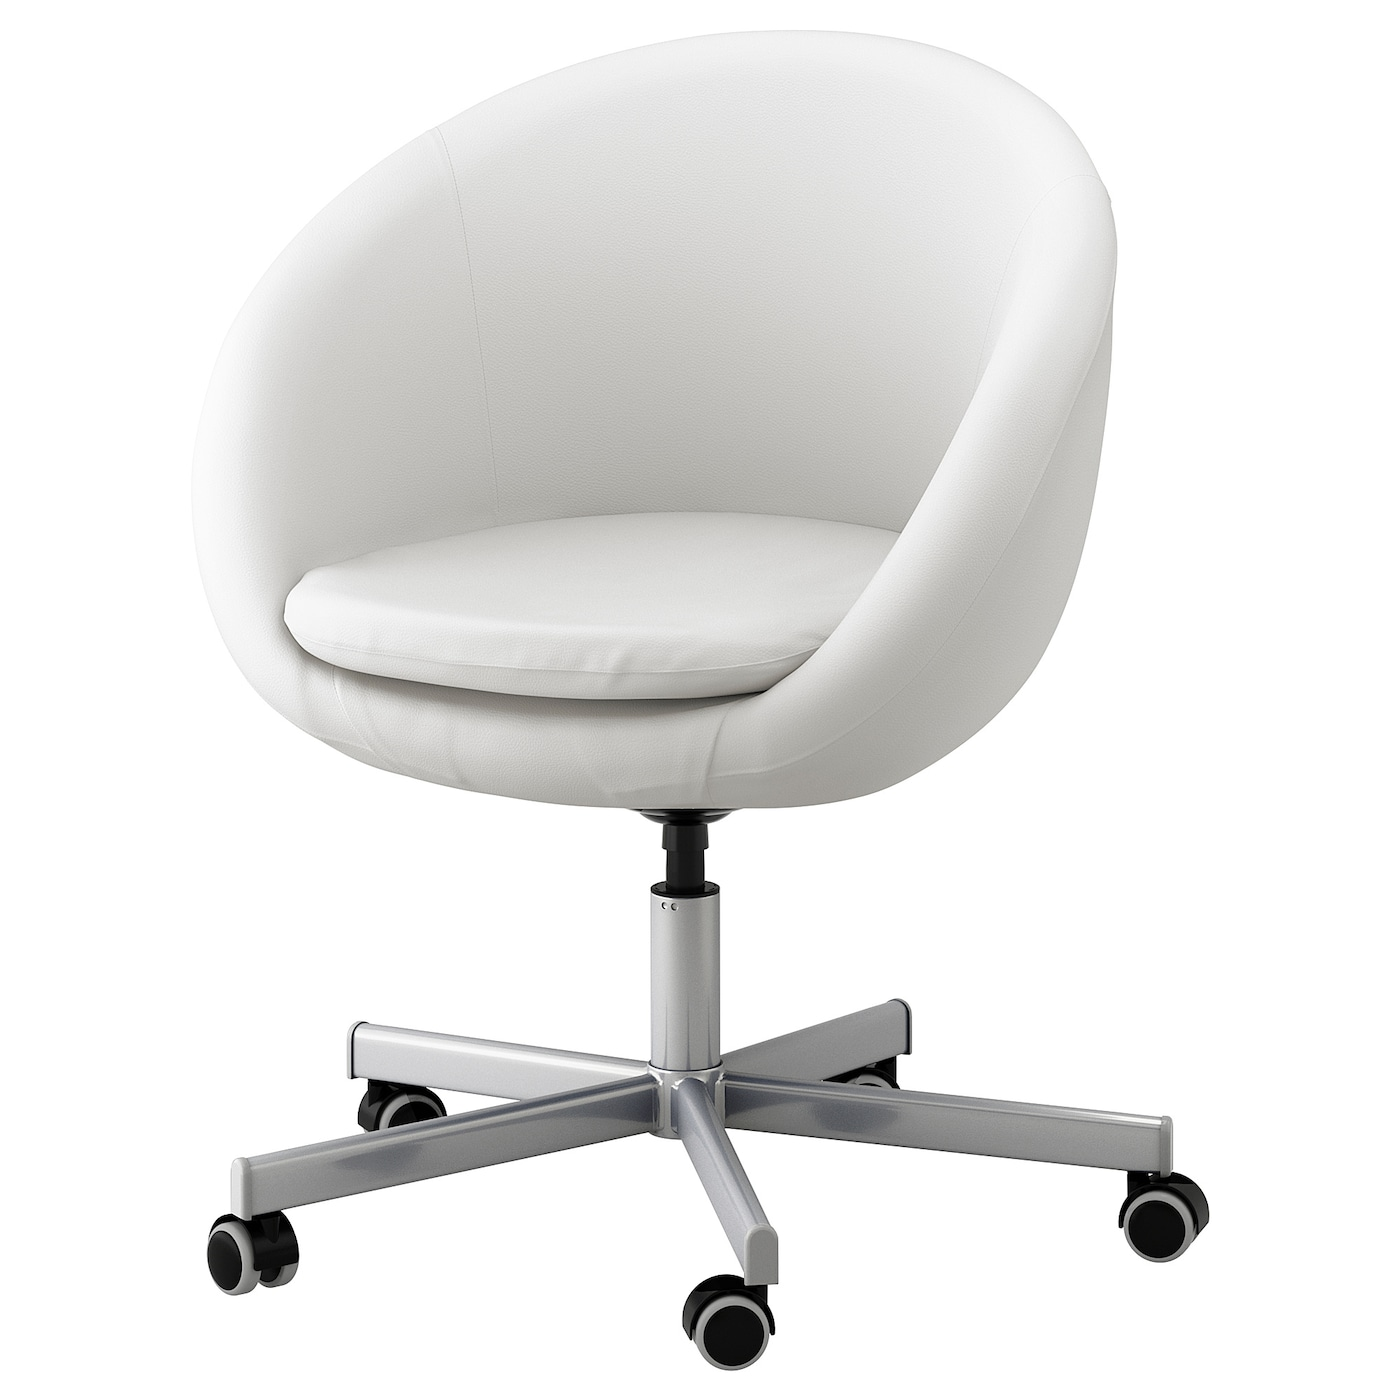 the vissle is gb ikea adjustable sit en green office stools products seating benches white sporren since rfj chair ll chairs height light swivel you comfortably in